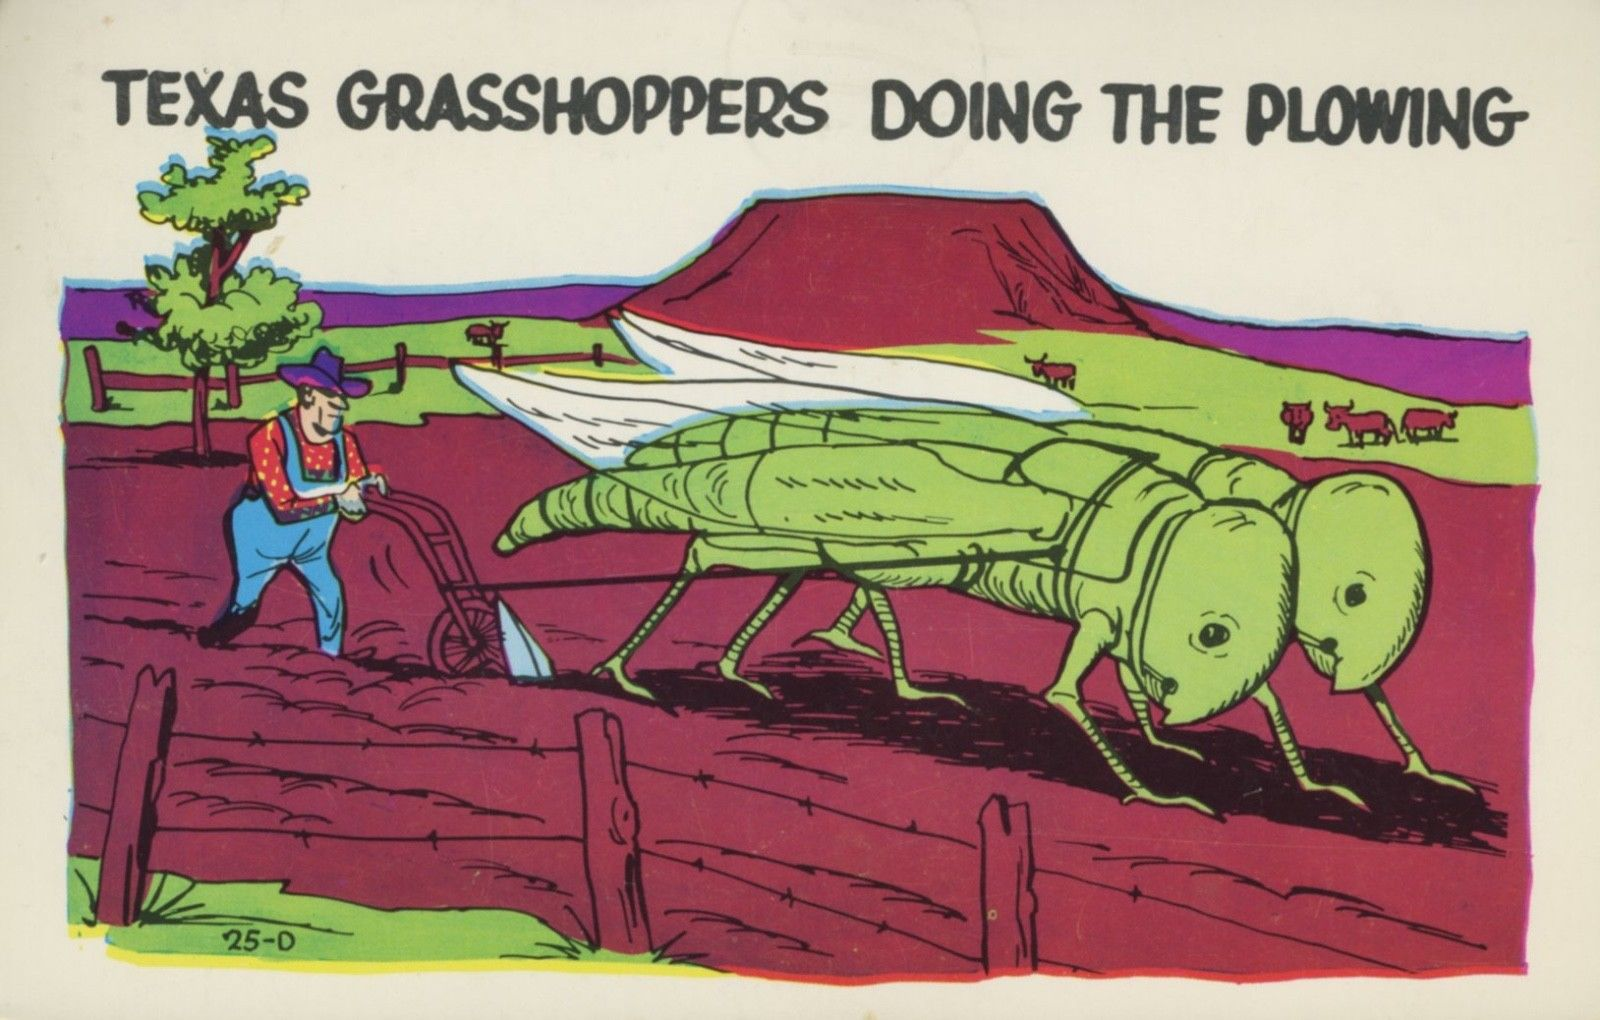 Texas Grasshoppers Doing The Plowing TX Laff Gram Comic